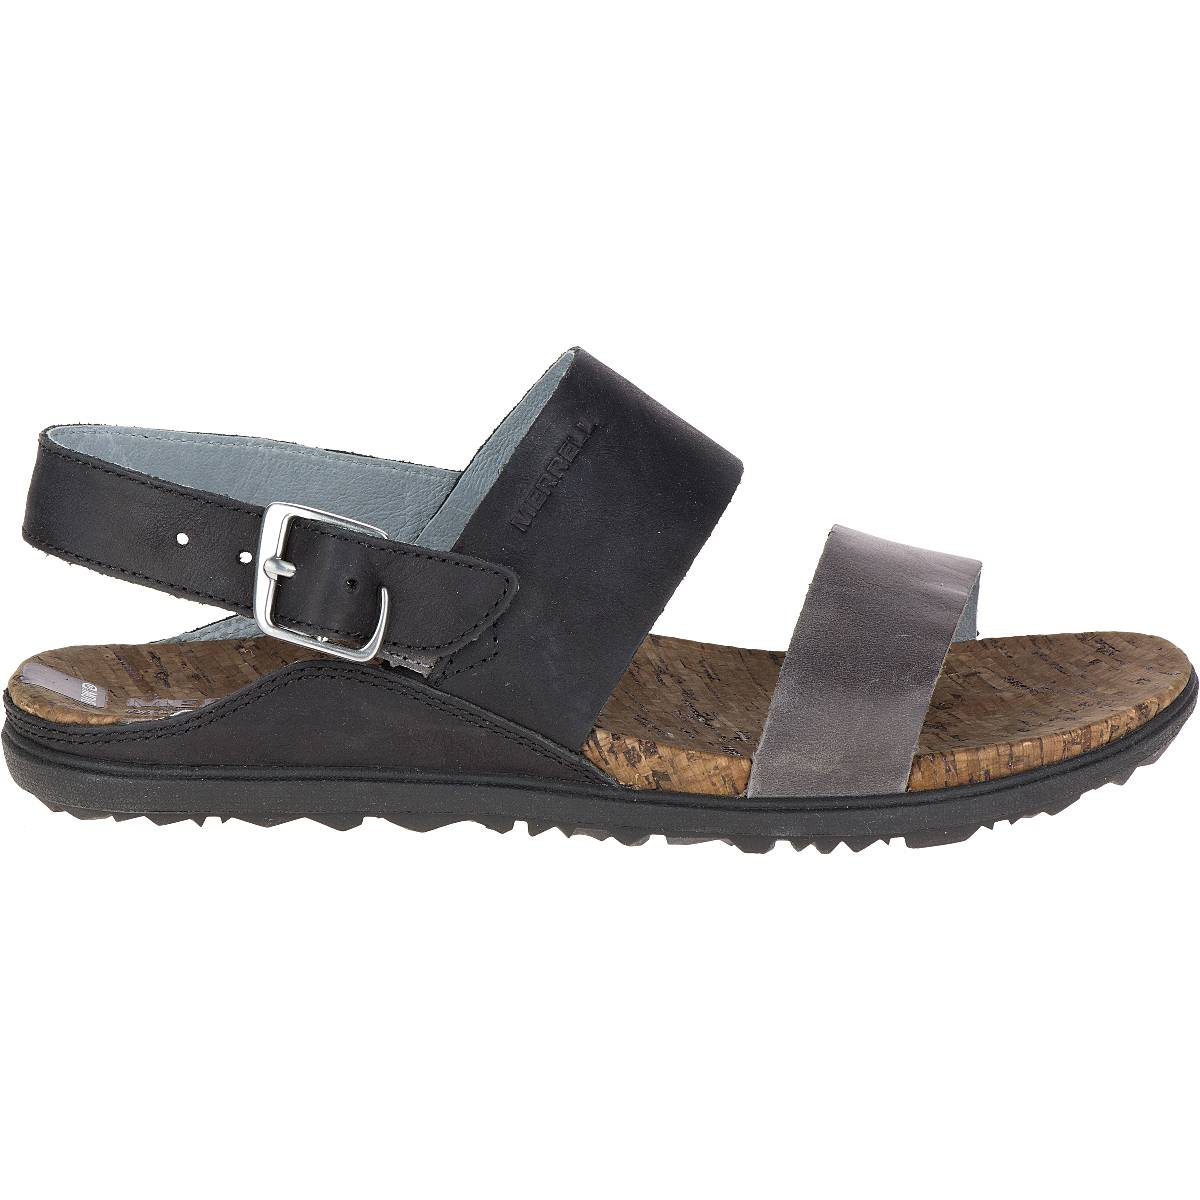 Cheap Authentic Wide Range Of Sale Online Merrell Around Town Backstrap Sandal(Women's) -Black/Black Outlet With Credit Card 3onhjygd